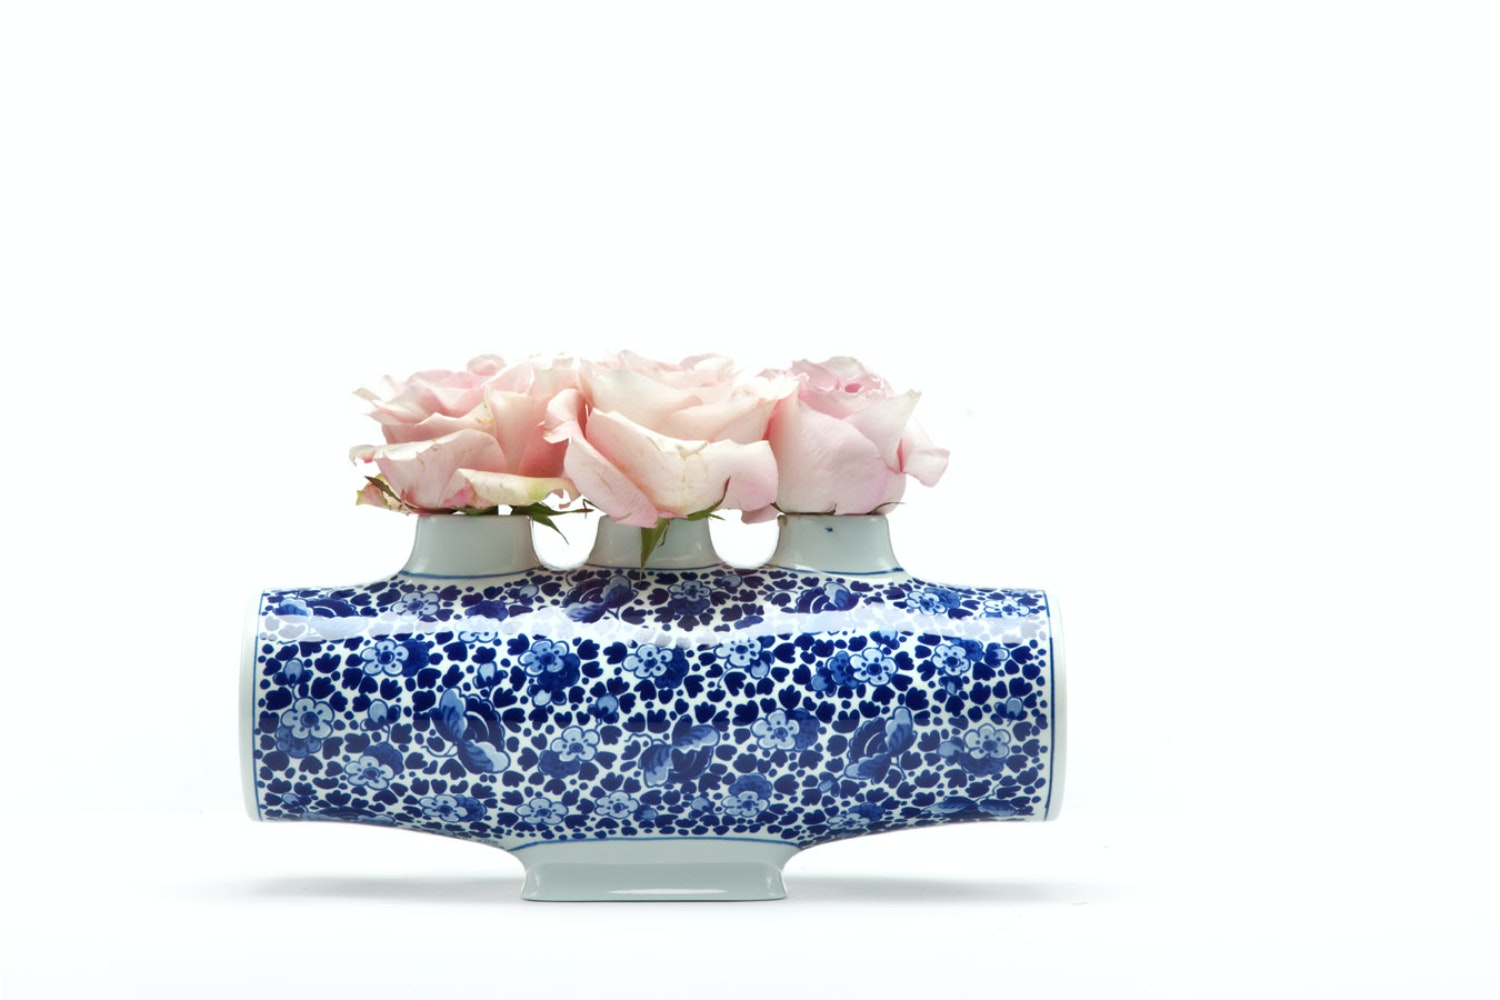 Delft Blue No. 04 Vase by Marcel Wanders for Moooi